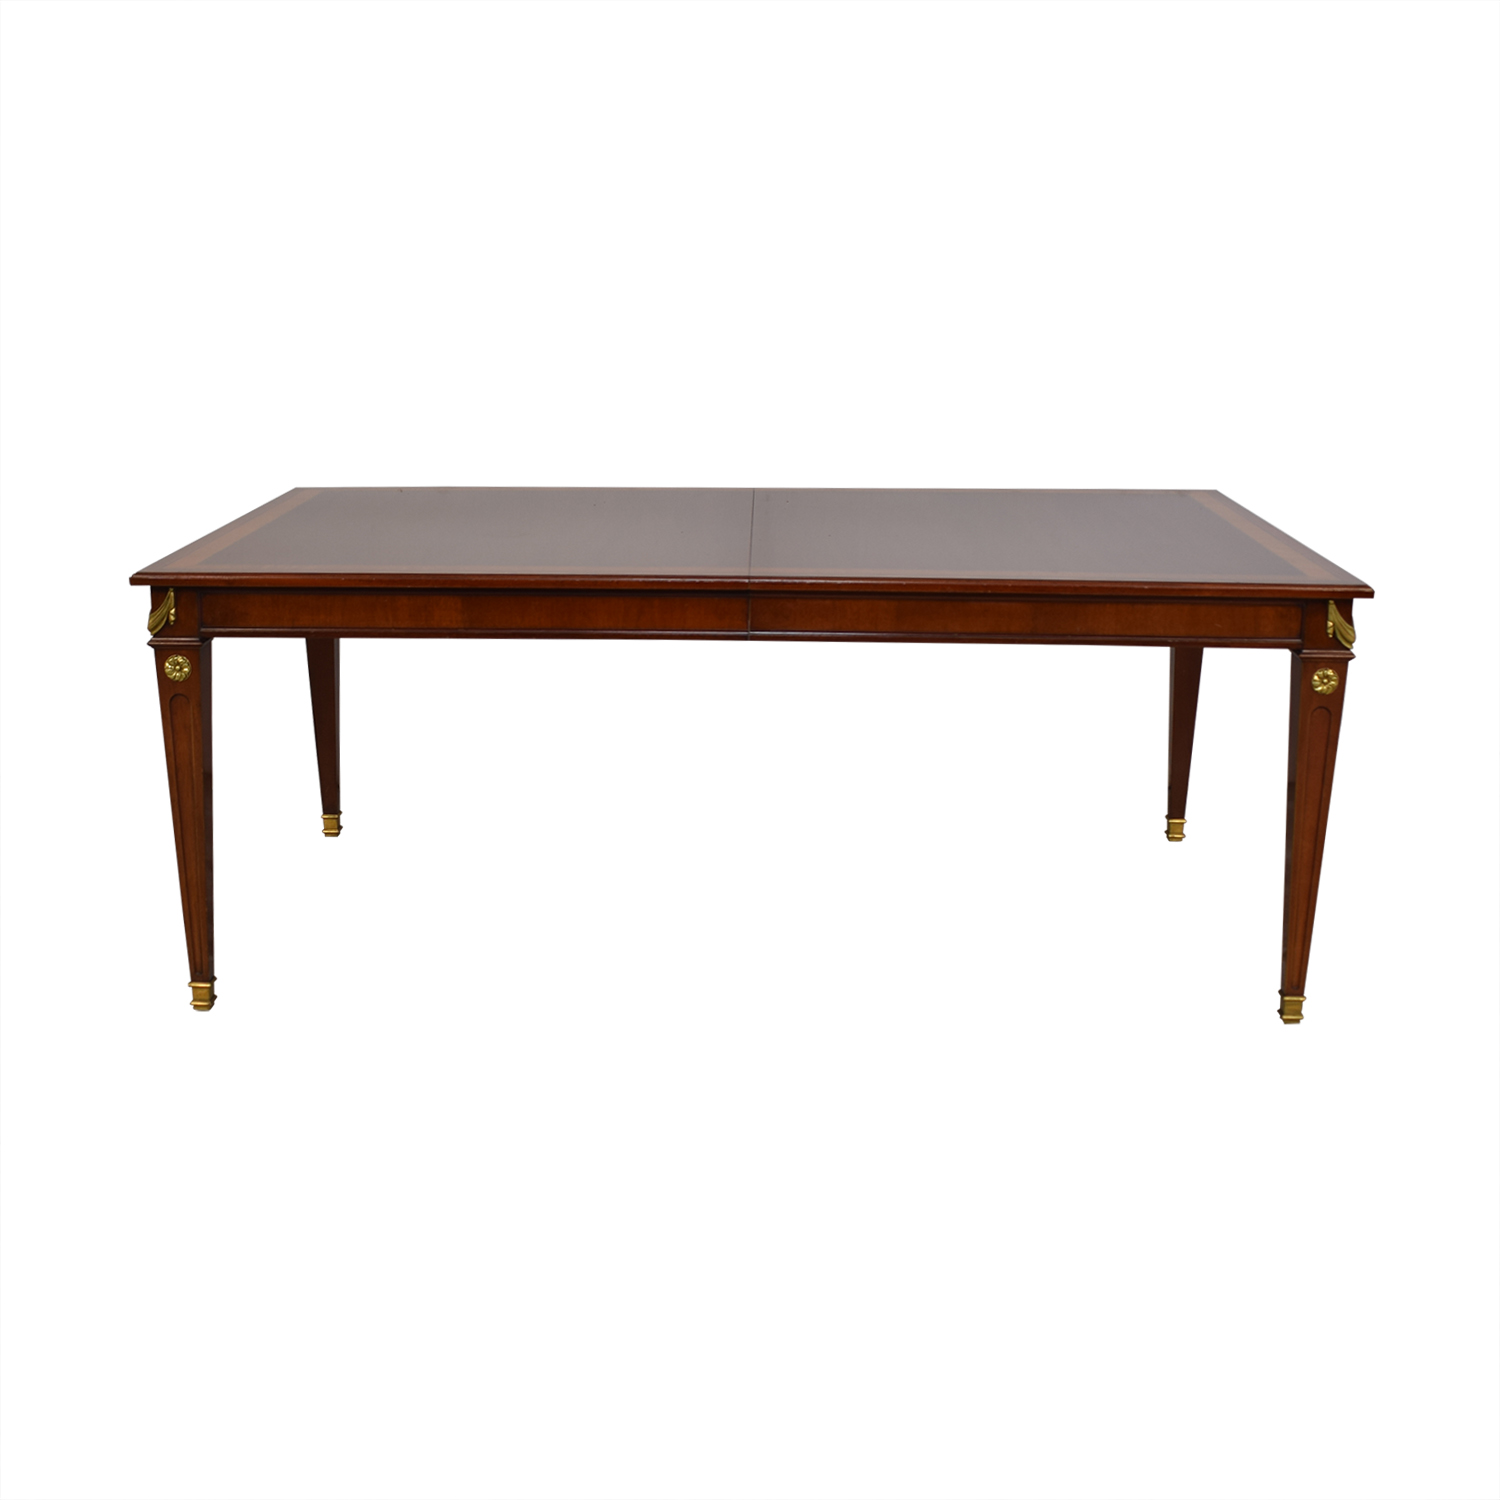 shop Kindel Kindel Mahogany Extension Dining Table online